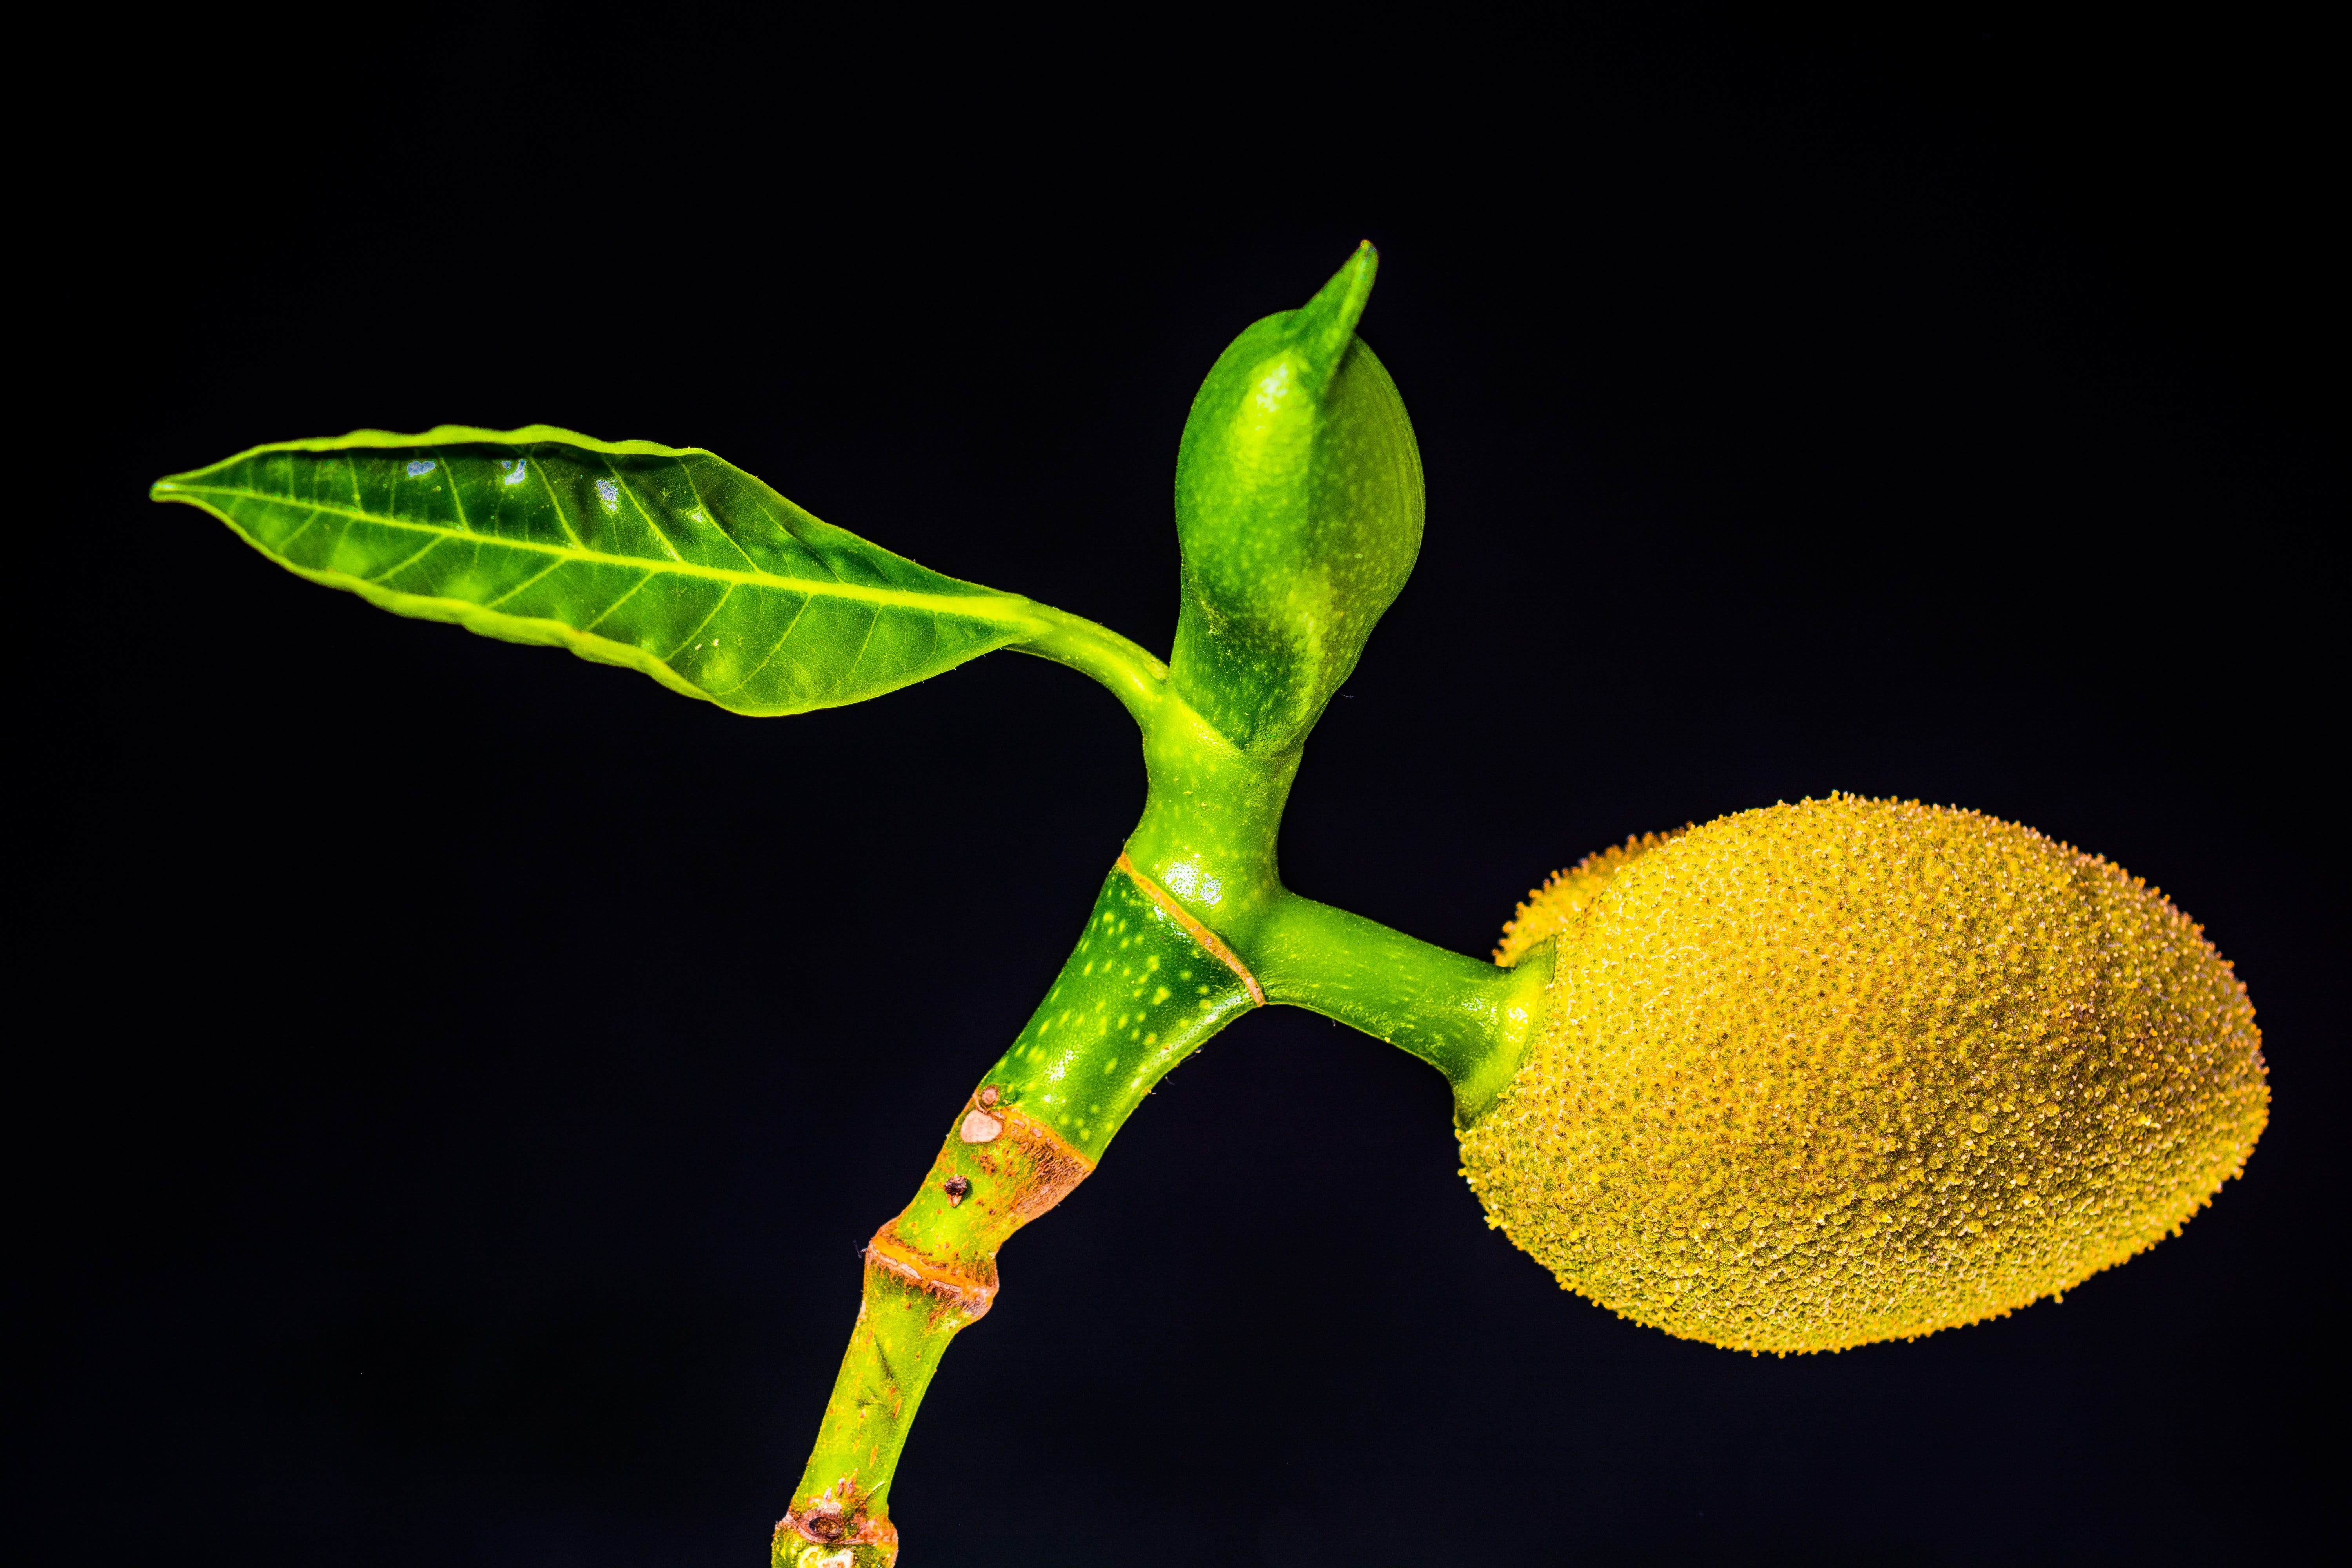 Single Leaf on Plant and Yellow Fruit